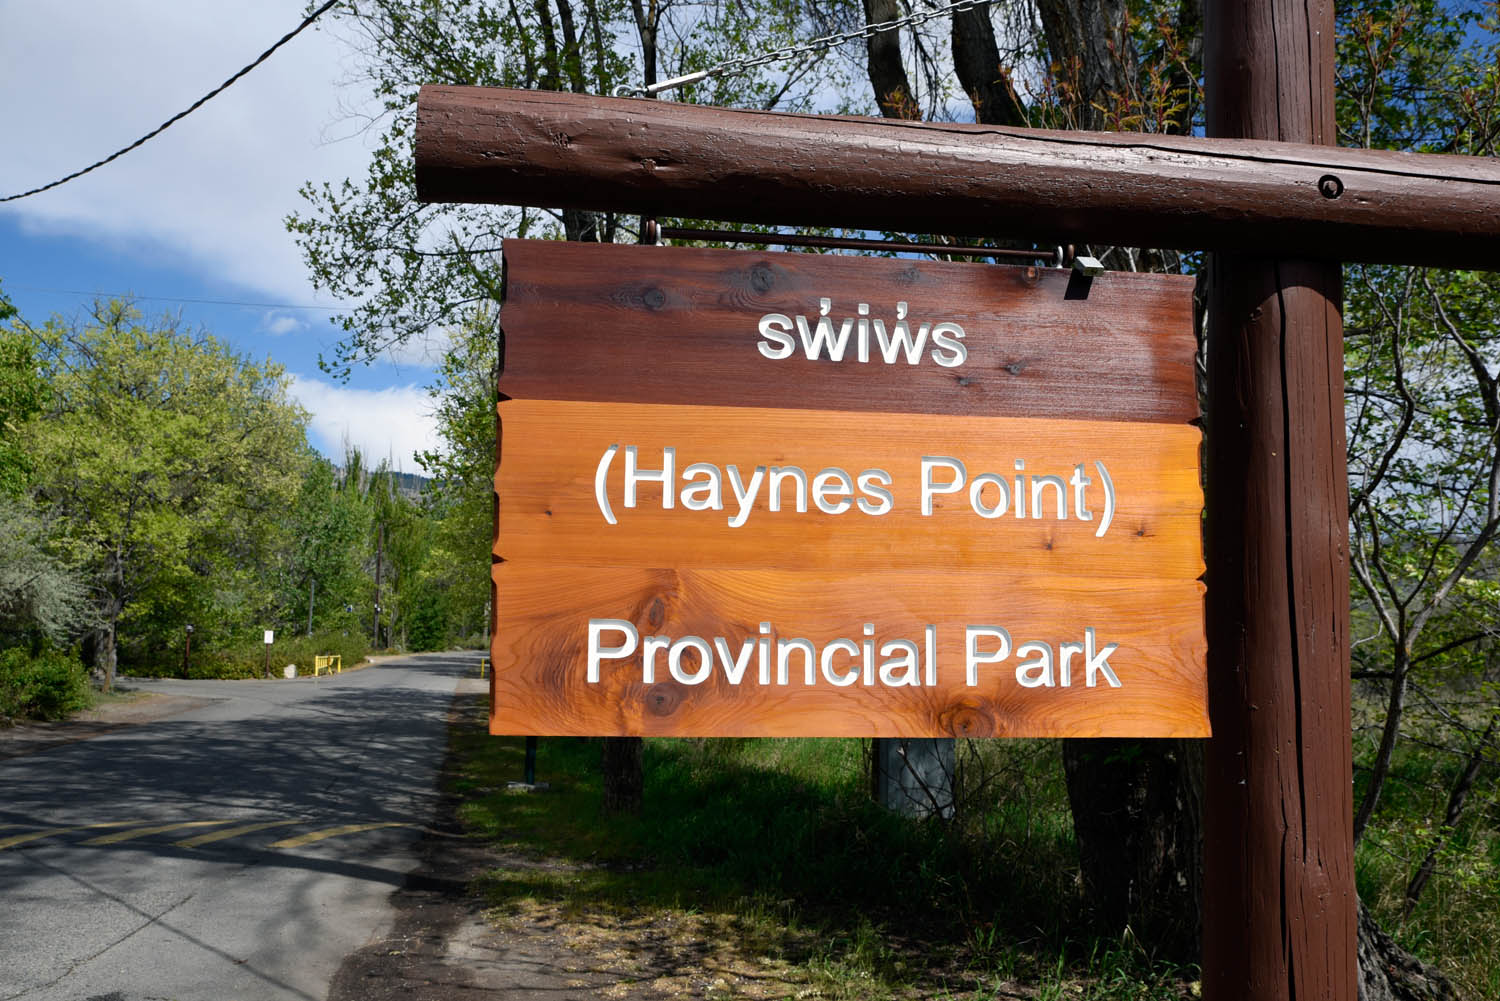 The provincial government has introduced a sweeping series of changes that it believes will lead to a much fairer system for campers across the province. Popular campgrounds like Haynes Point Provincial Park have traditionally been booked months in advance and often those who book the site take advantage of the current rules, but that will change under the new provisions. (Richard McGuire photo)